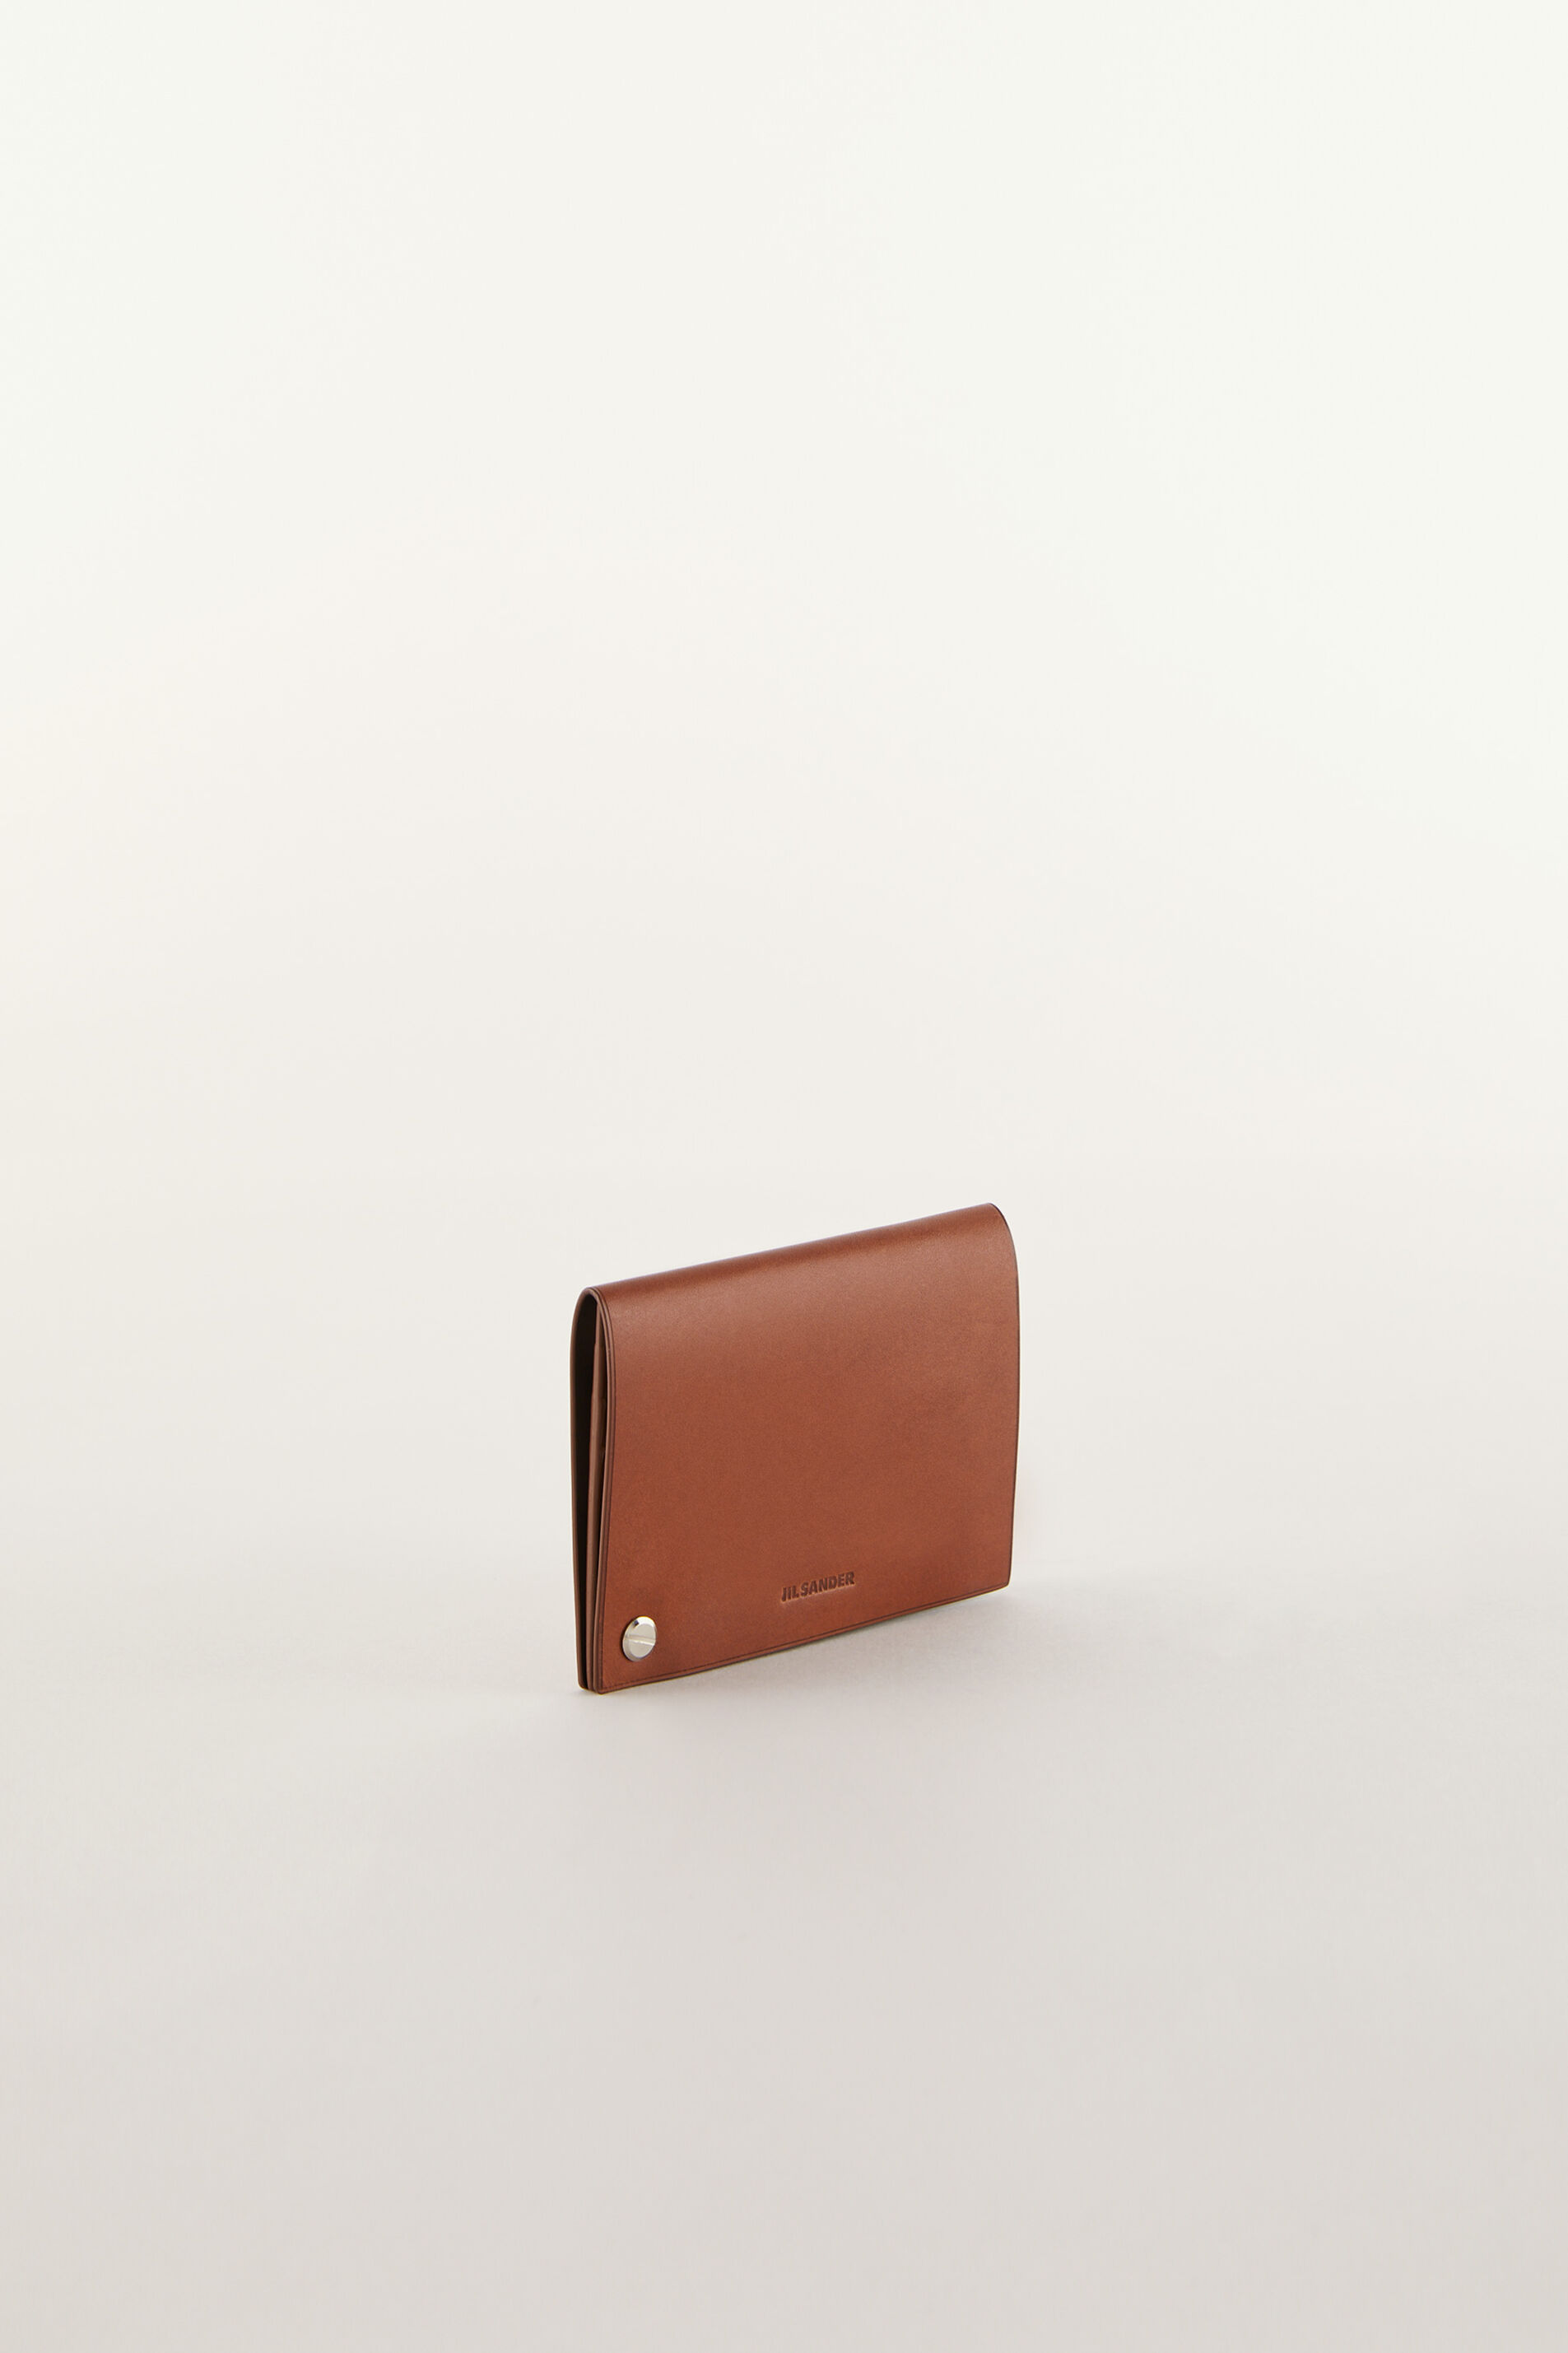 Card Holder, brown, large